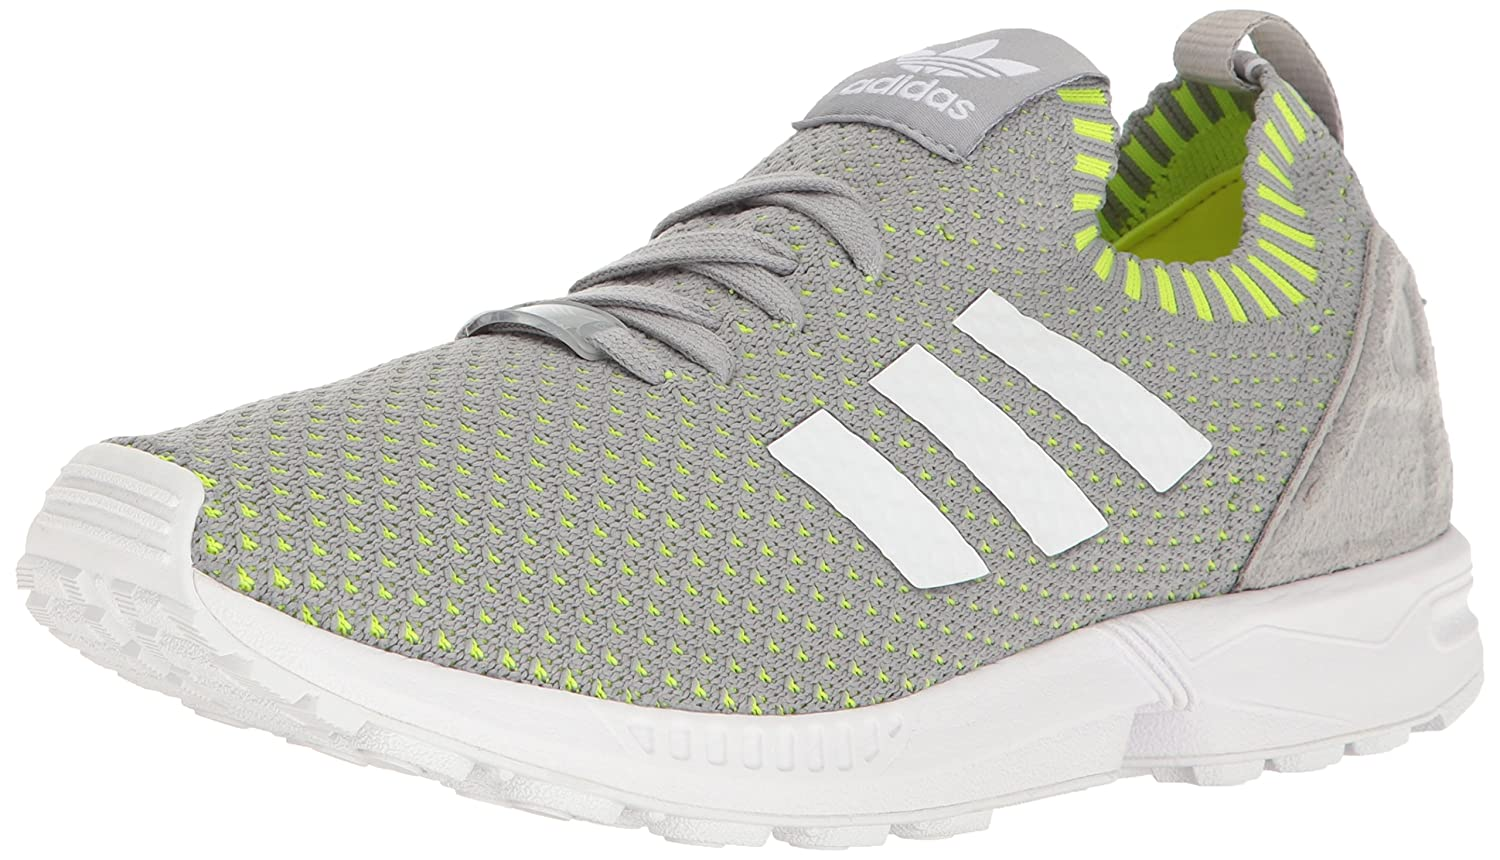 new styles e0b34 f6159 adidas Flux, Men s Trainers  Amazon.co.uk  Shoes   Bags